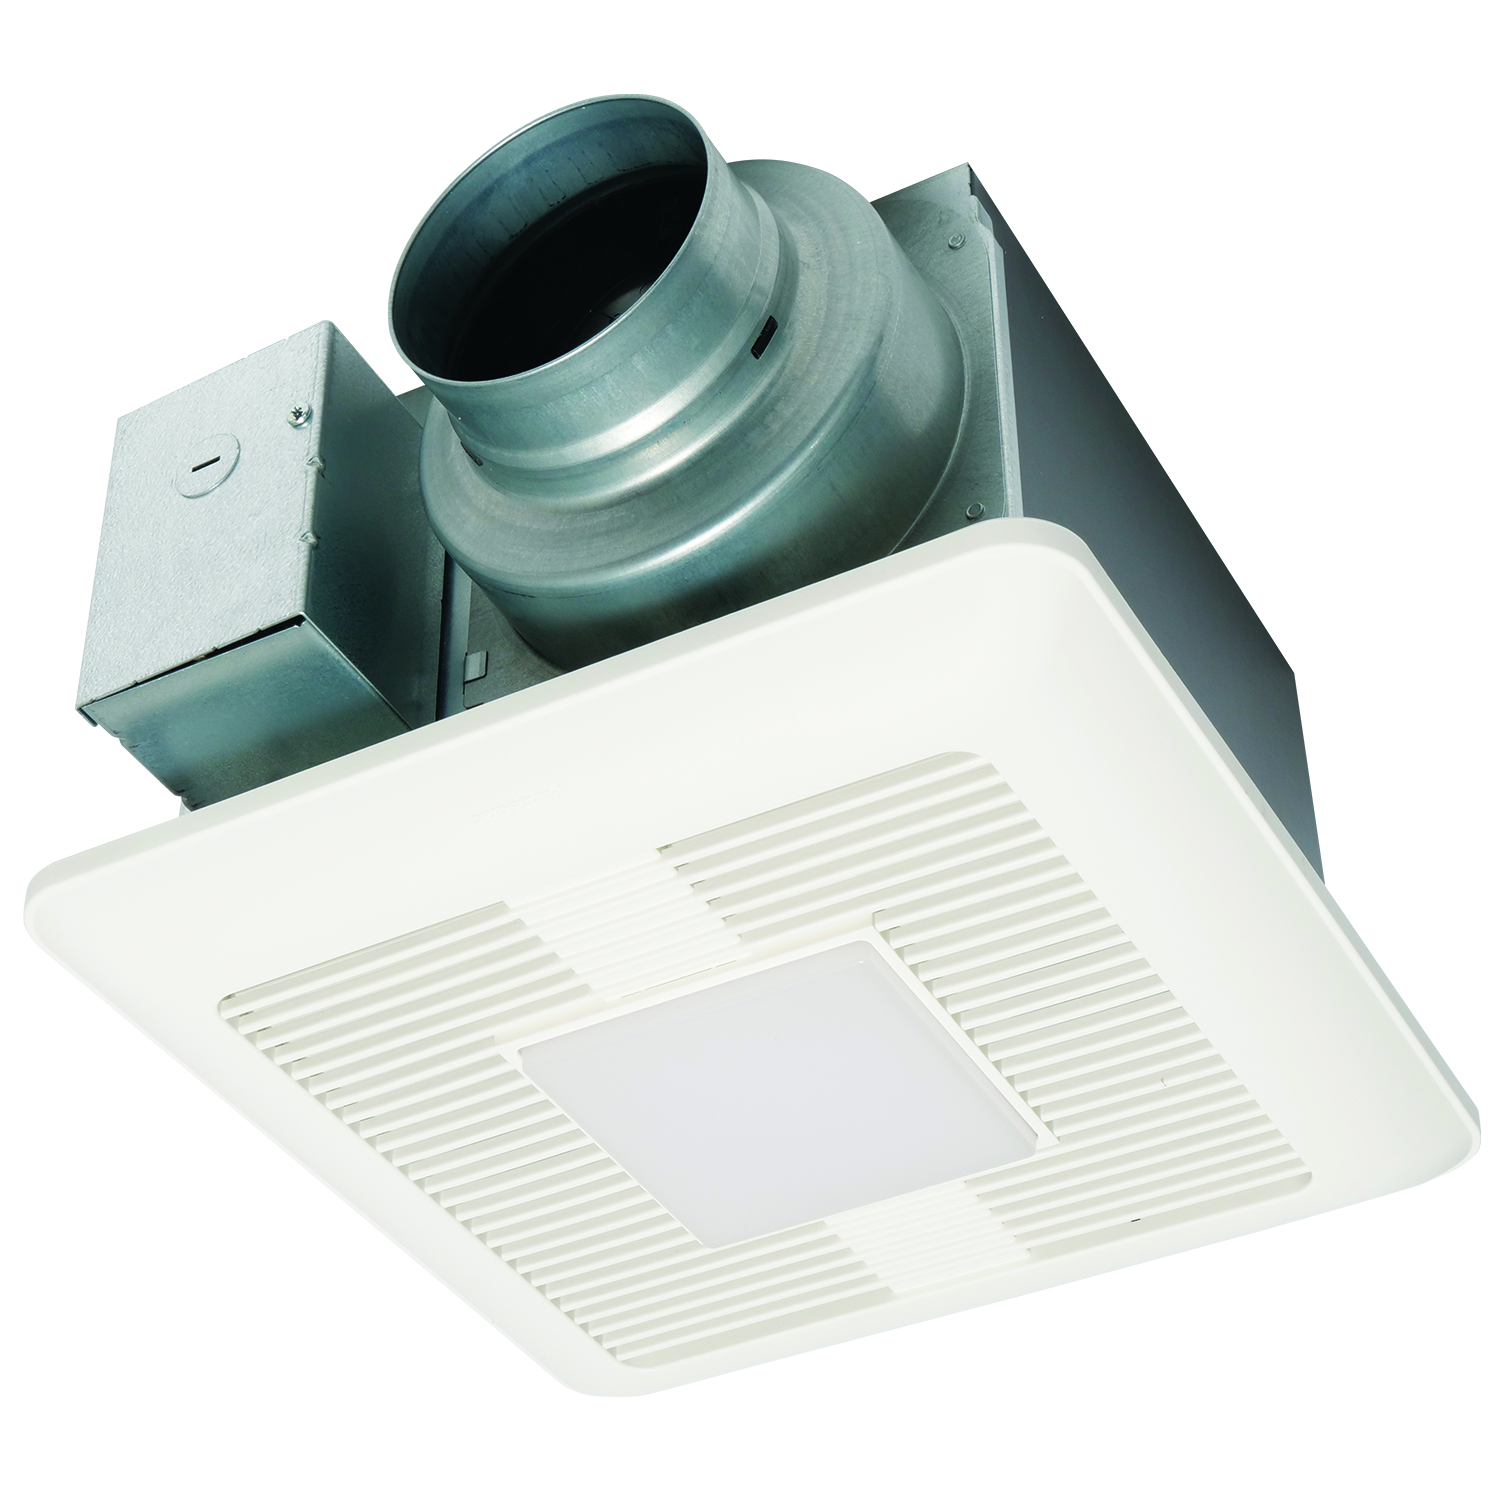 PNS FV-0511VQL1 50-80-110CFM Whisperceiling Exhaust Fan/Light - <.3 Sones - Energy Star - Speed Selector (50/80/110) NEWSTOCK NOV 2017